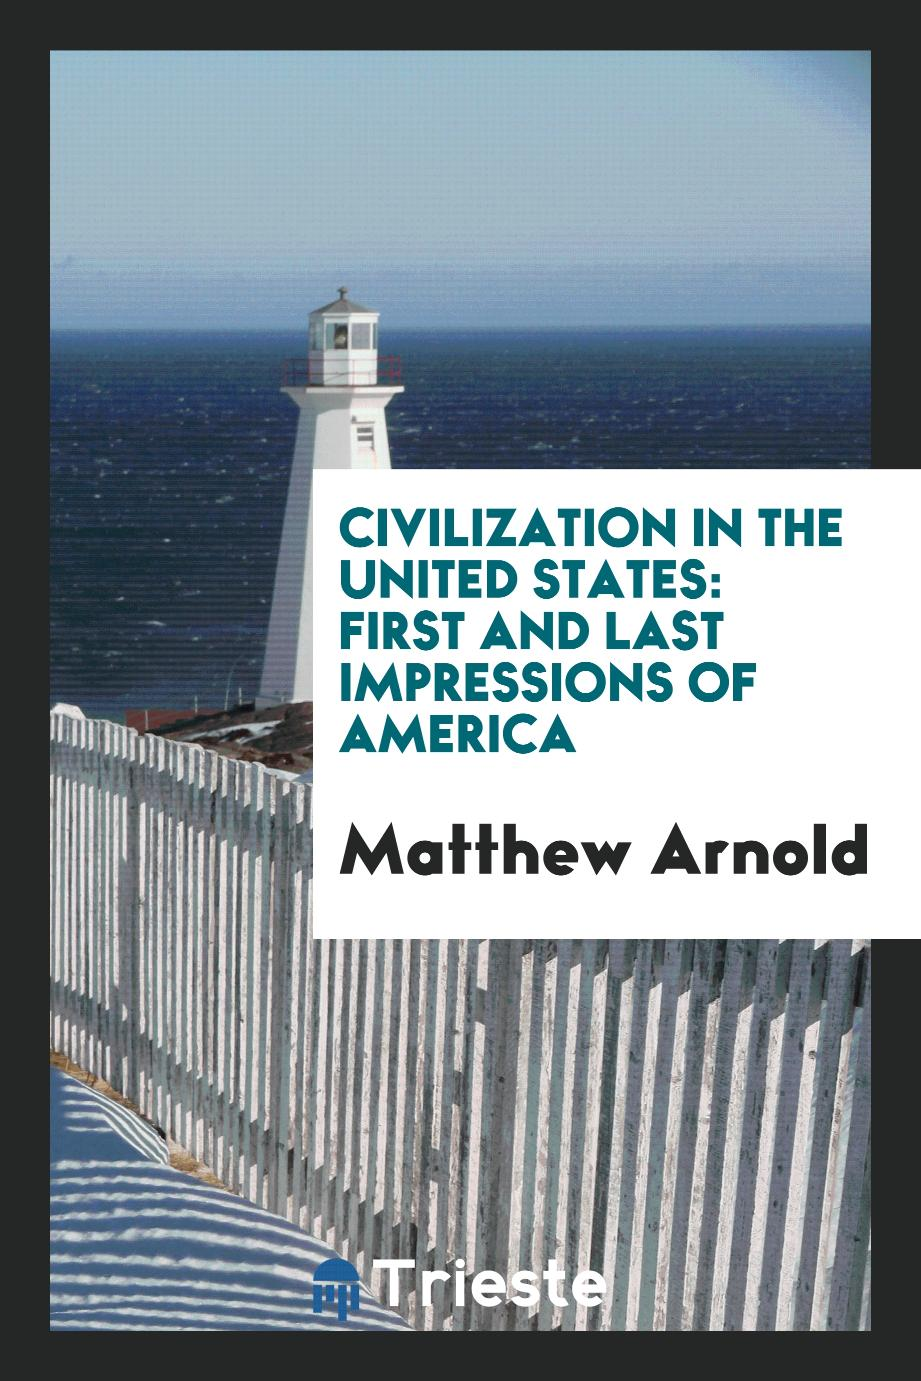 Matthew Arnold - Civilization in the United States: First and Last Impressions of America